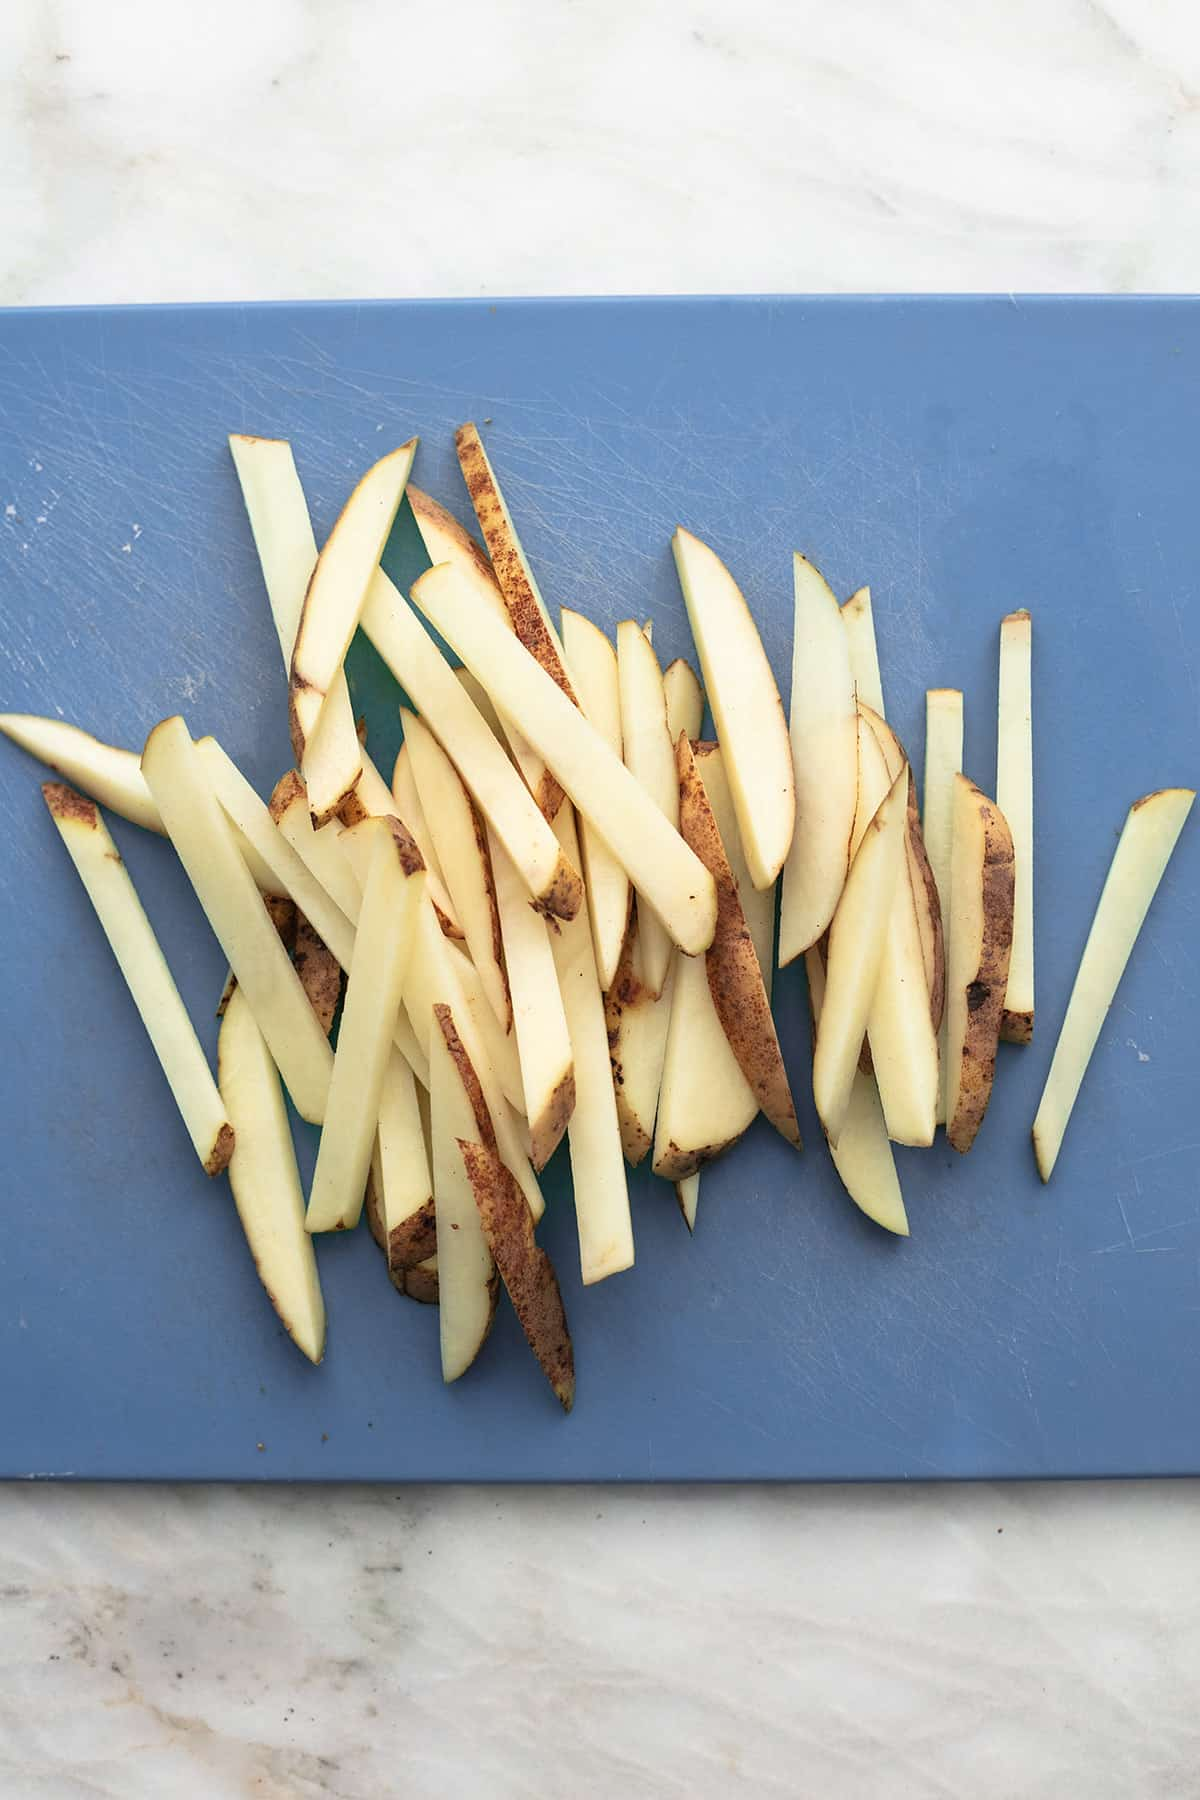 sliced potatoes on blue cutting board